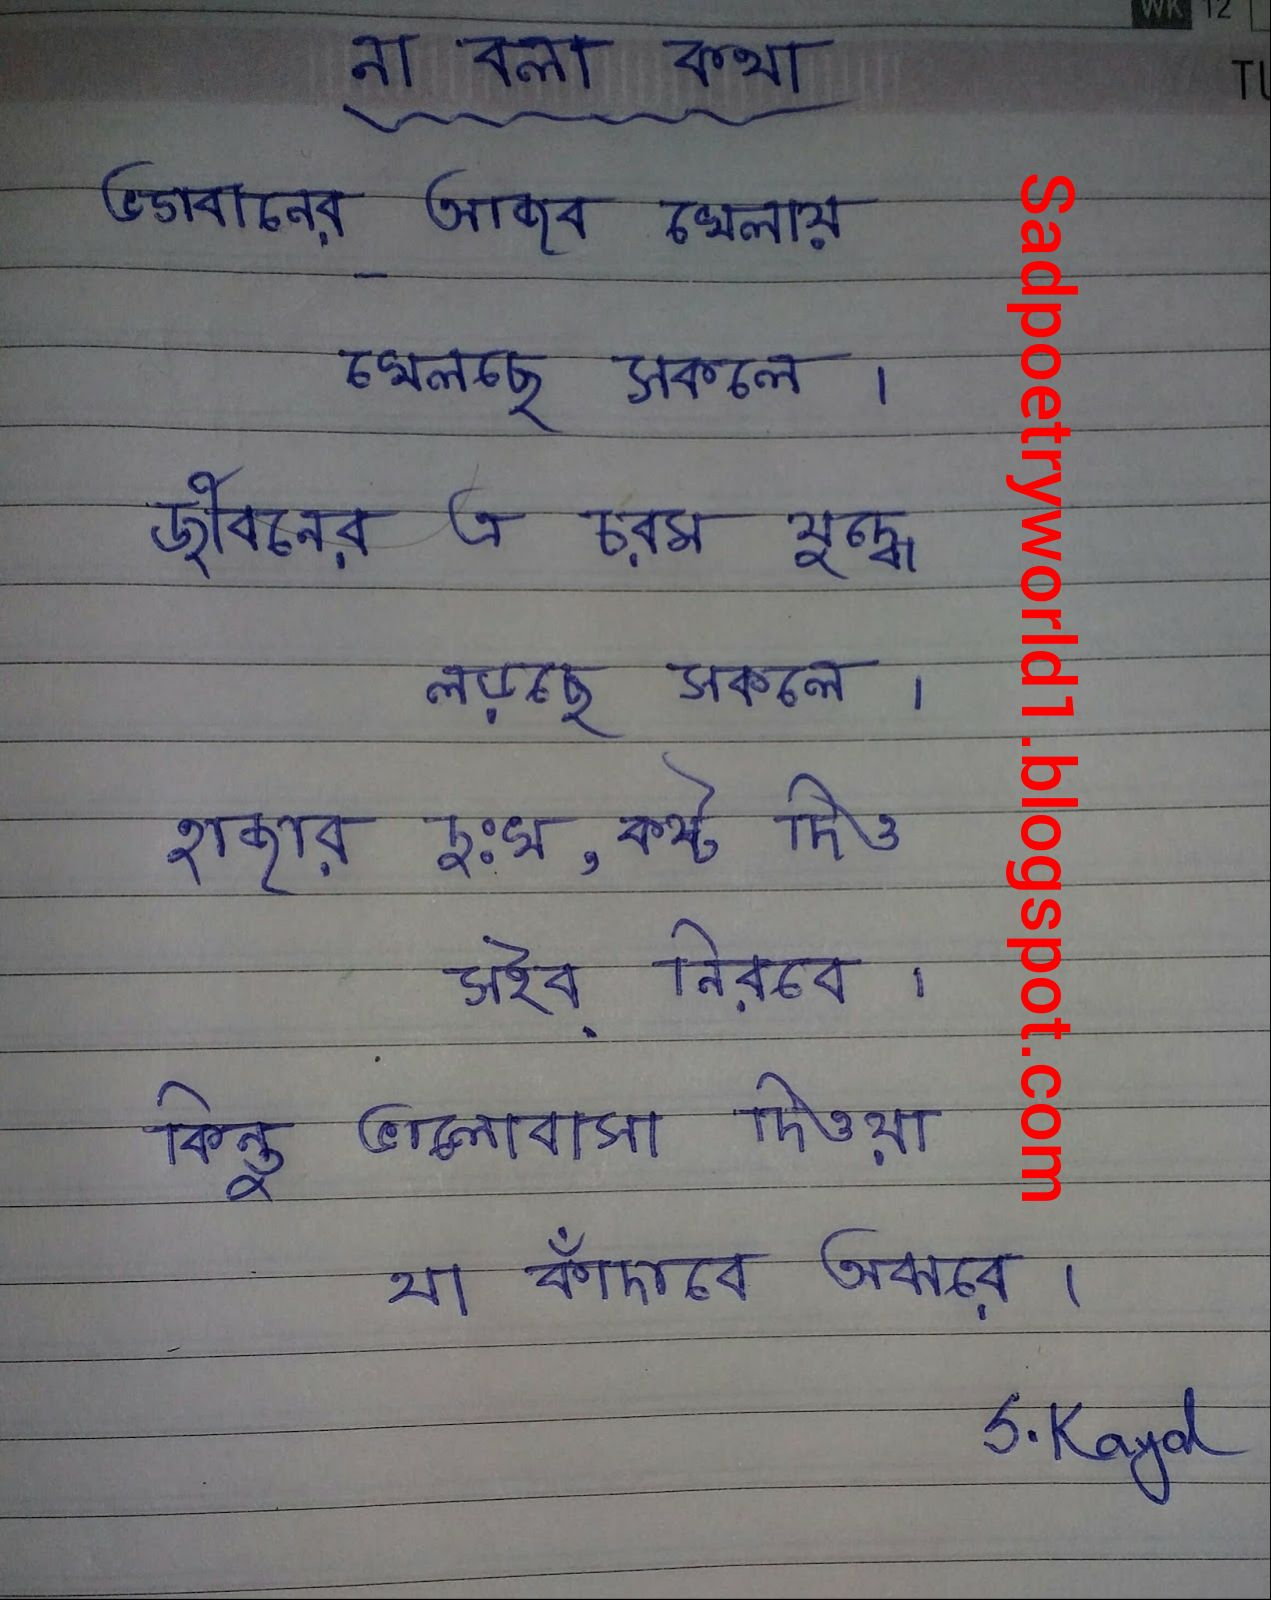 Broken heart sad poems and love story in bengali     for more please